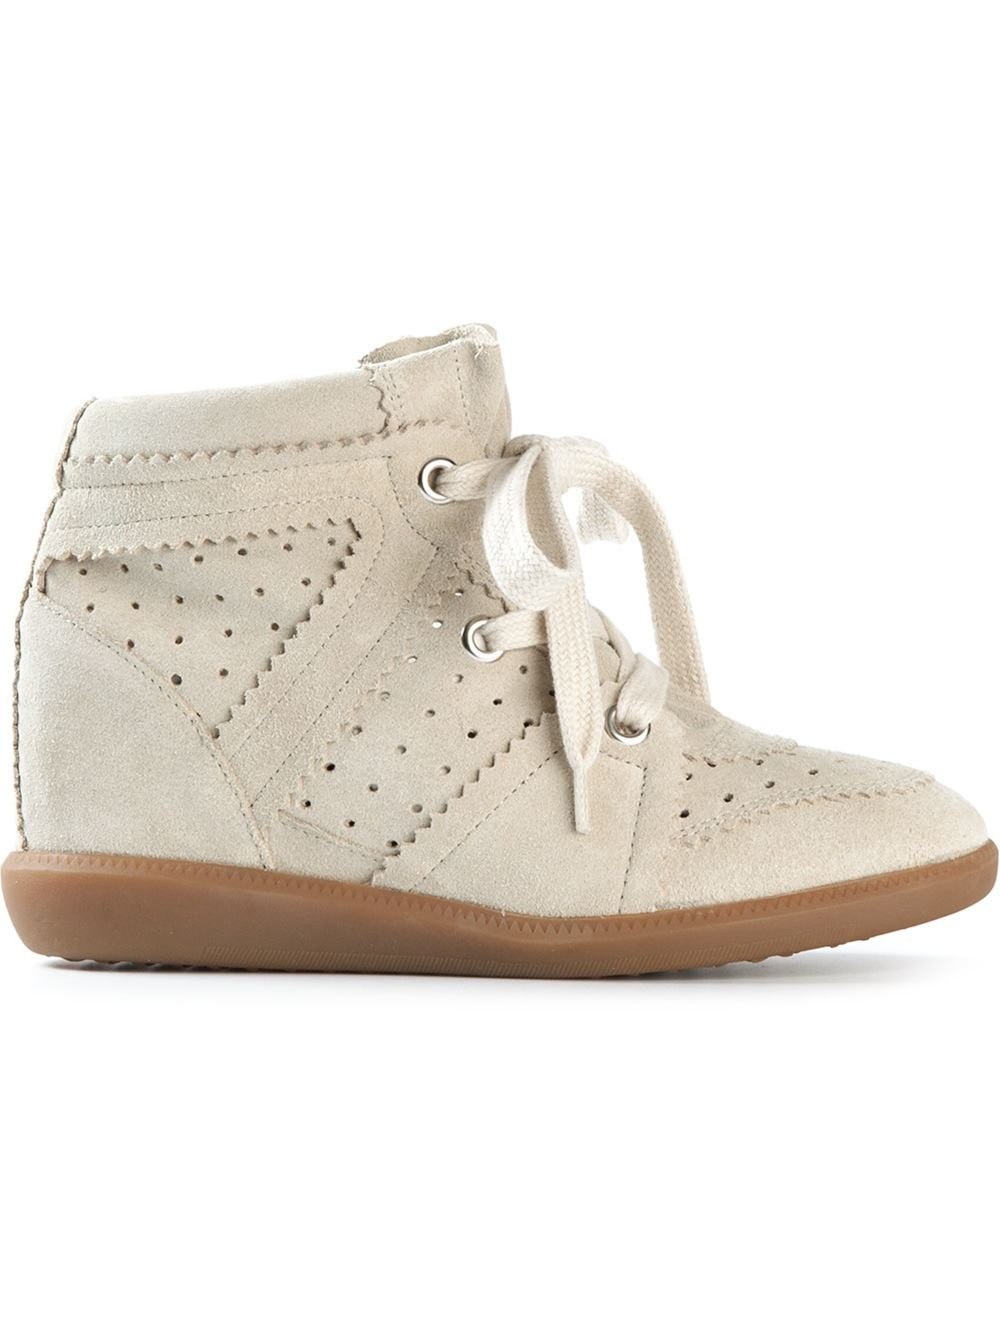 afdea8165de Gallery. Previously sold at: Farfetch · Women's Wedge Sneakers Women's Isabel  Marant Bobby